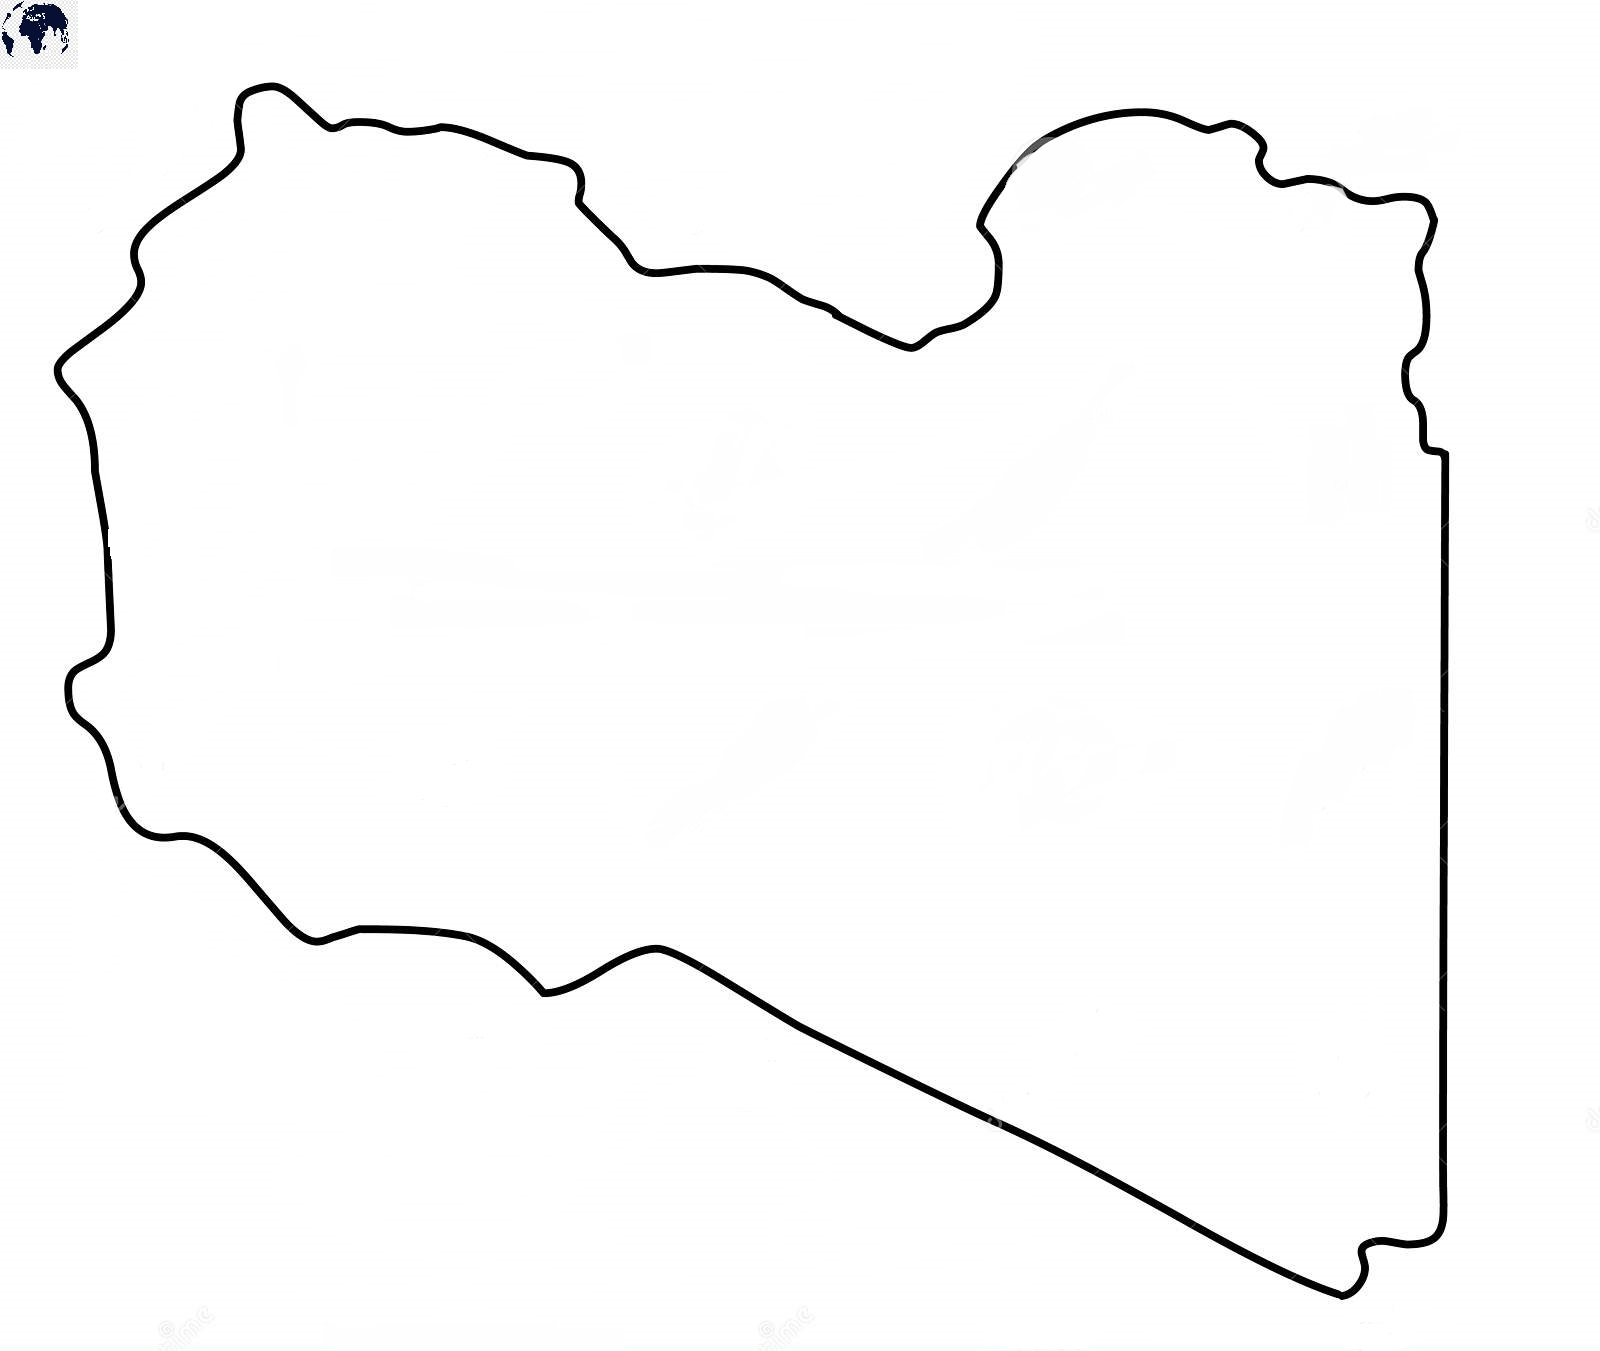 Blank Libya Map - Outline